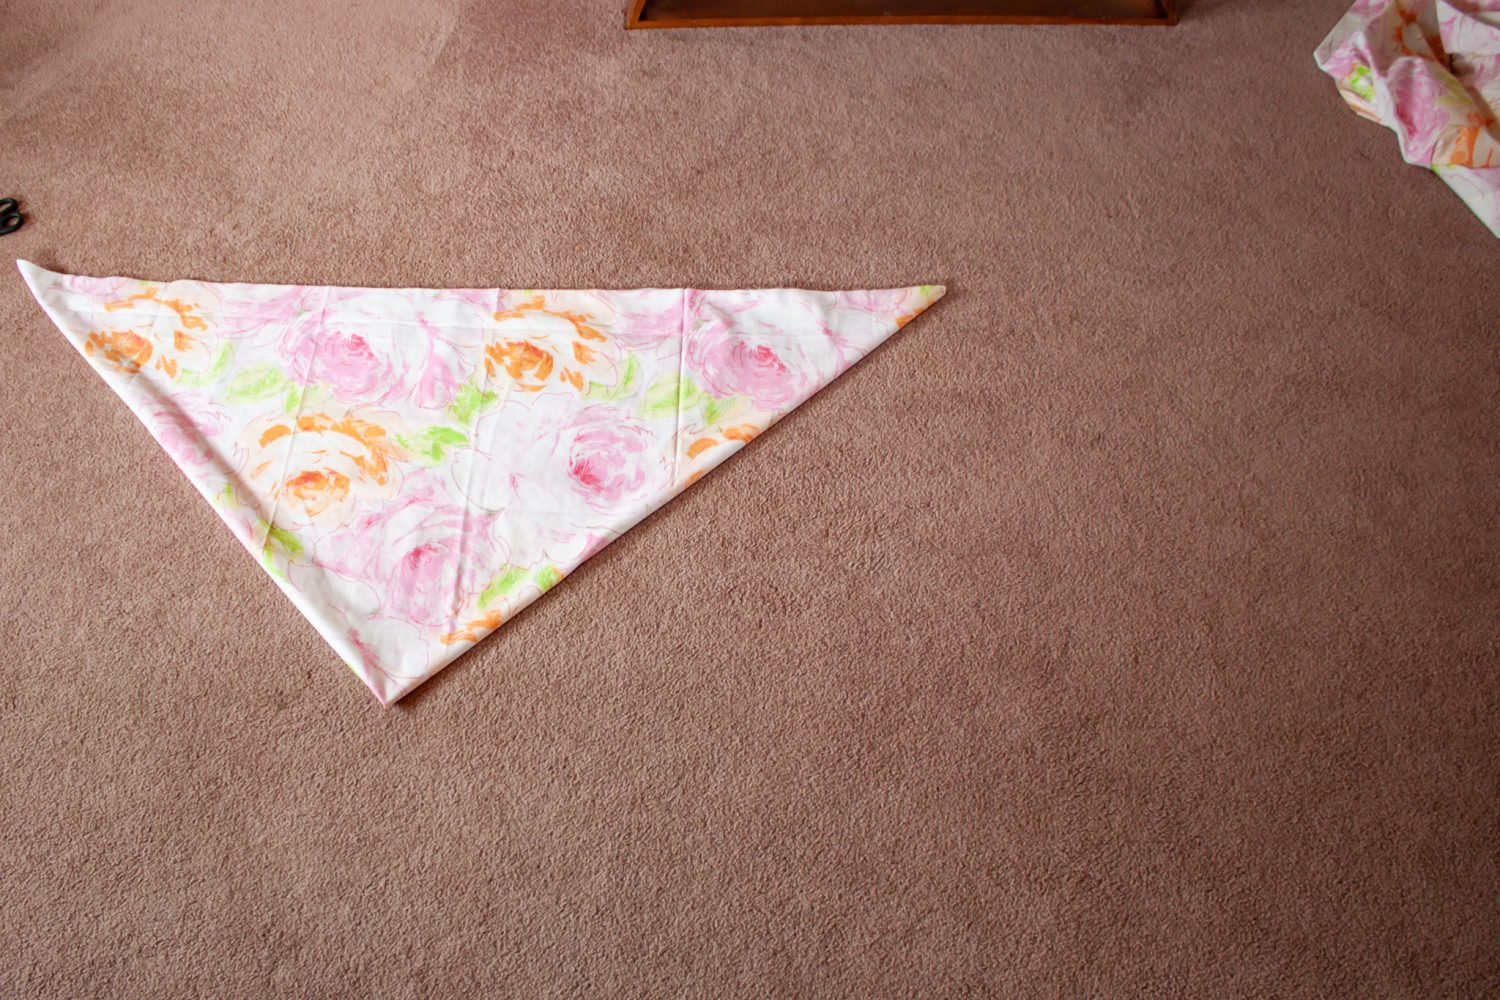 Fabric folded into a triangle